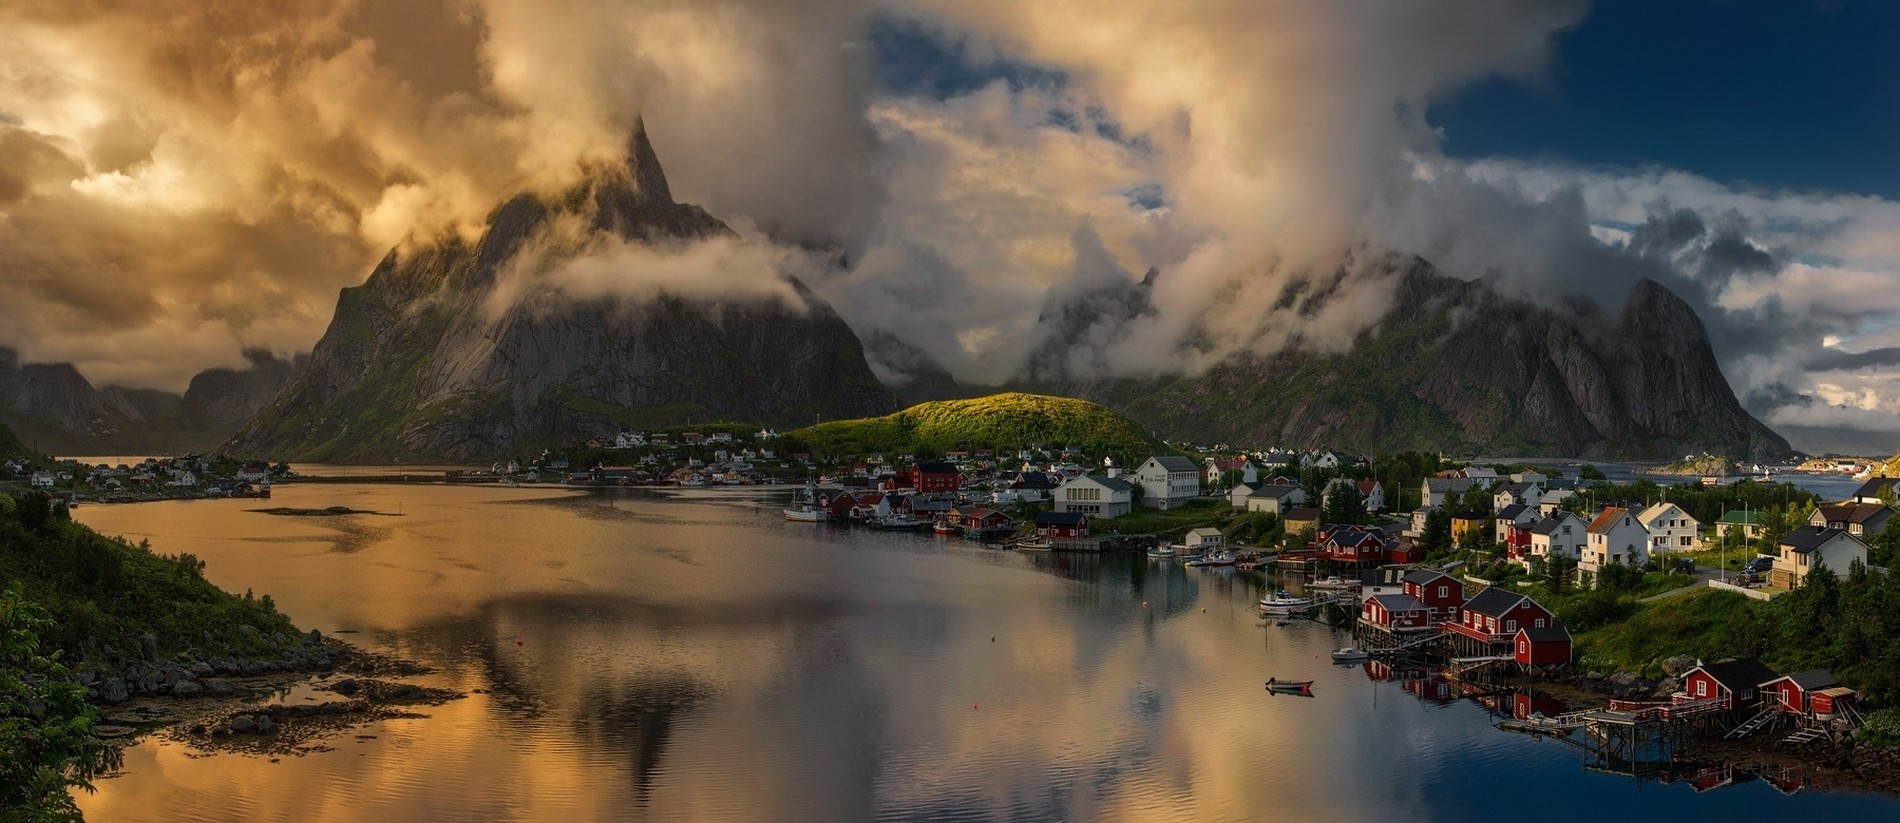 lofoten island town clouds nature sunlight sunset fjord landscape summer boat sea norway mountains